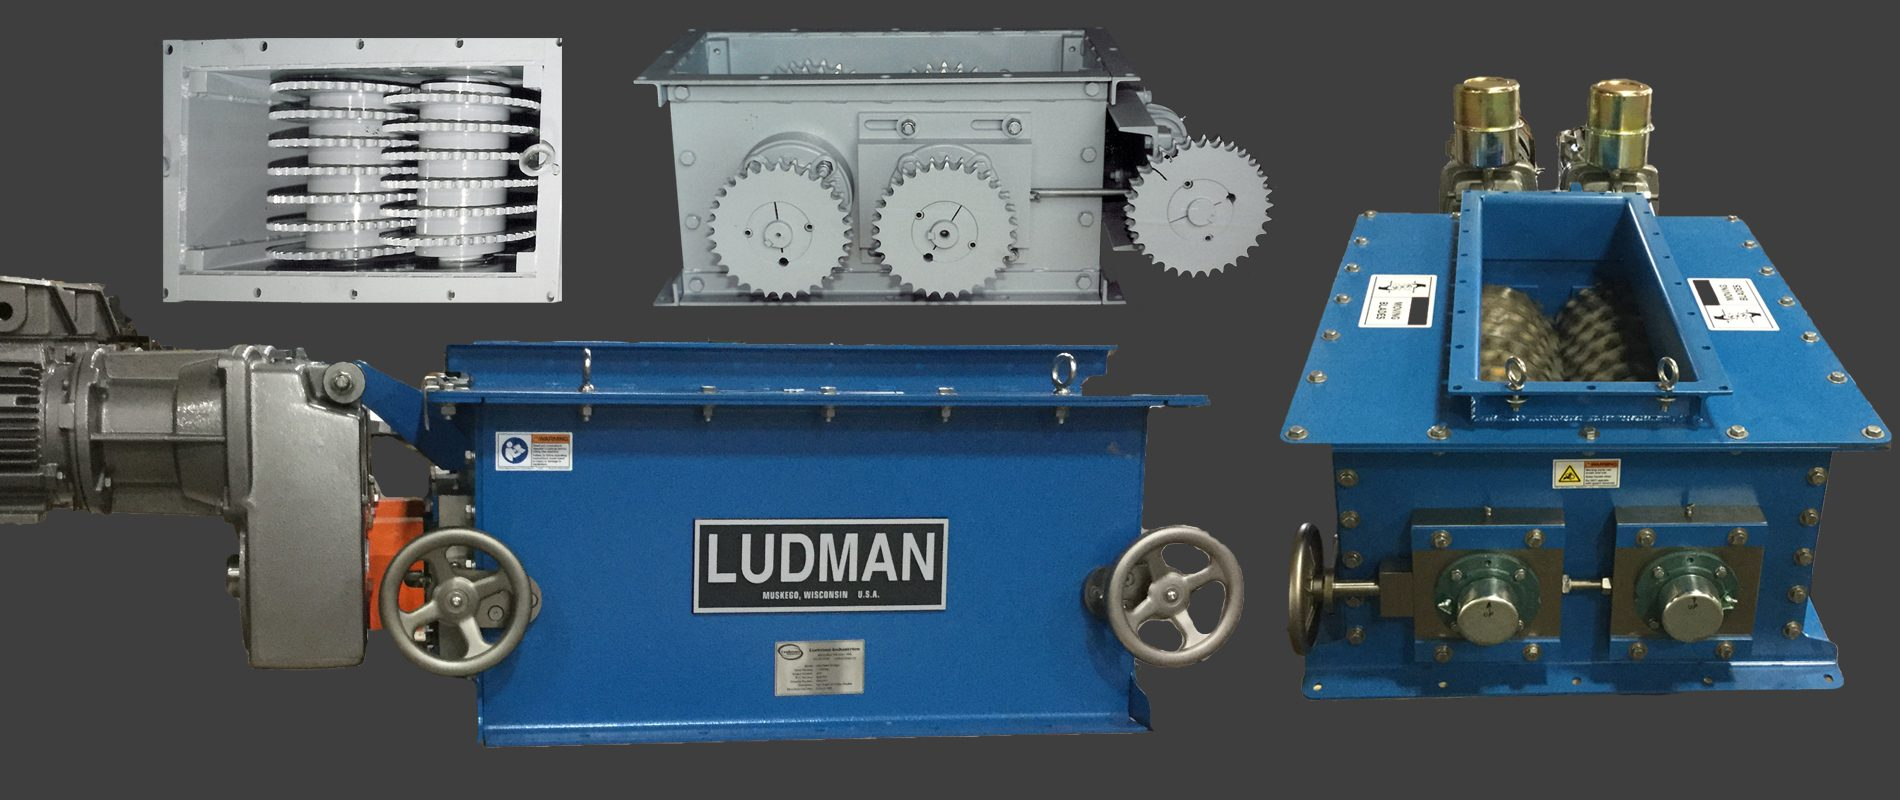 Ludman Flake Breakers